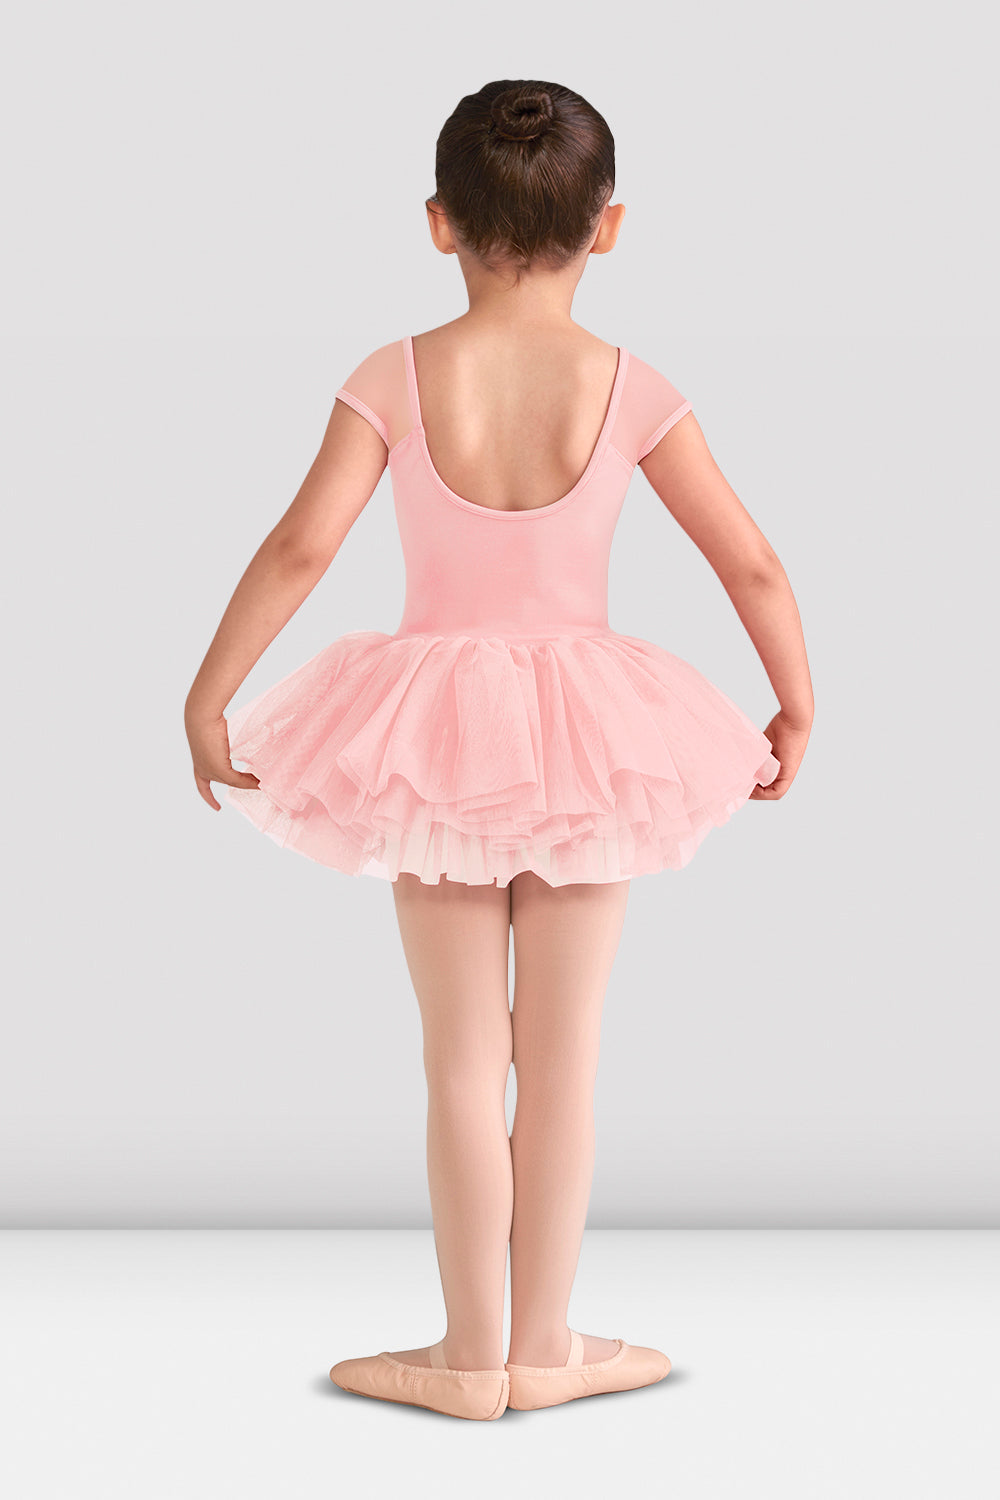 Pink Blossom Bloch Girls Abelle Mesh Tutu Leotard on female model in first position with arms in demi bras facing back